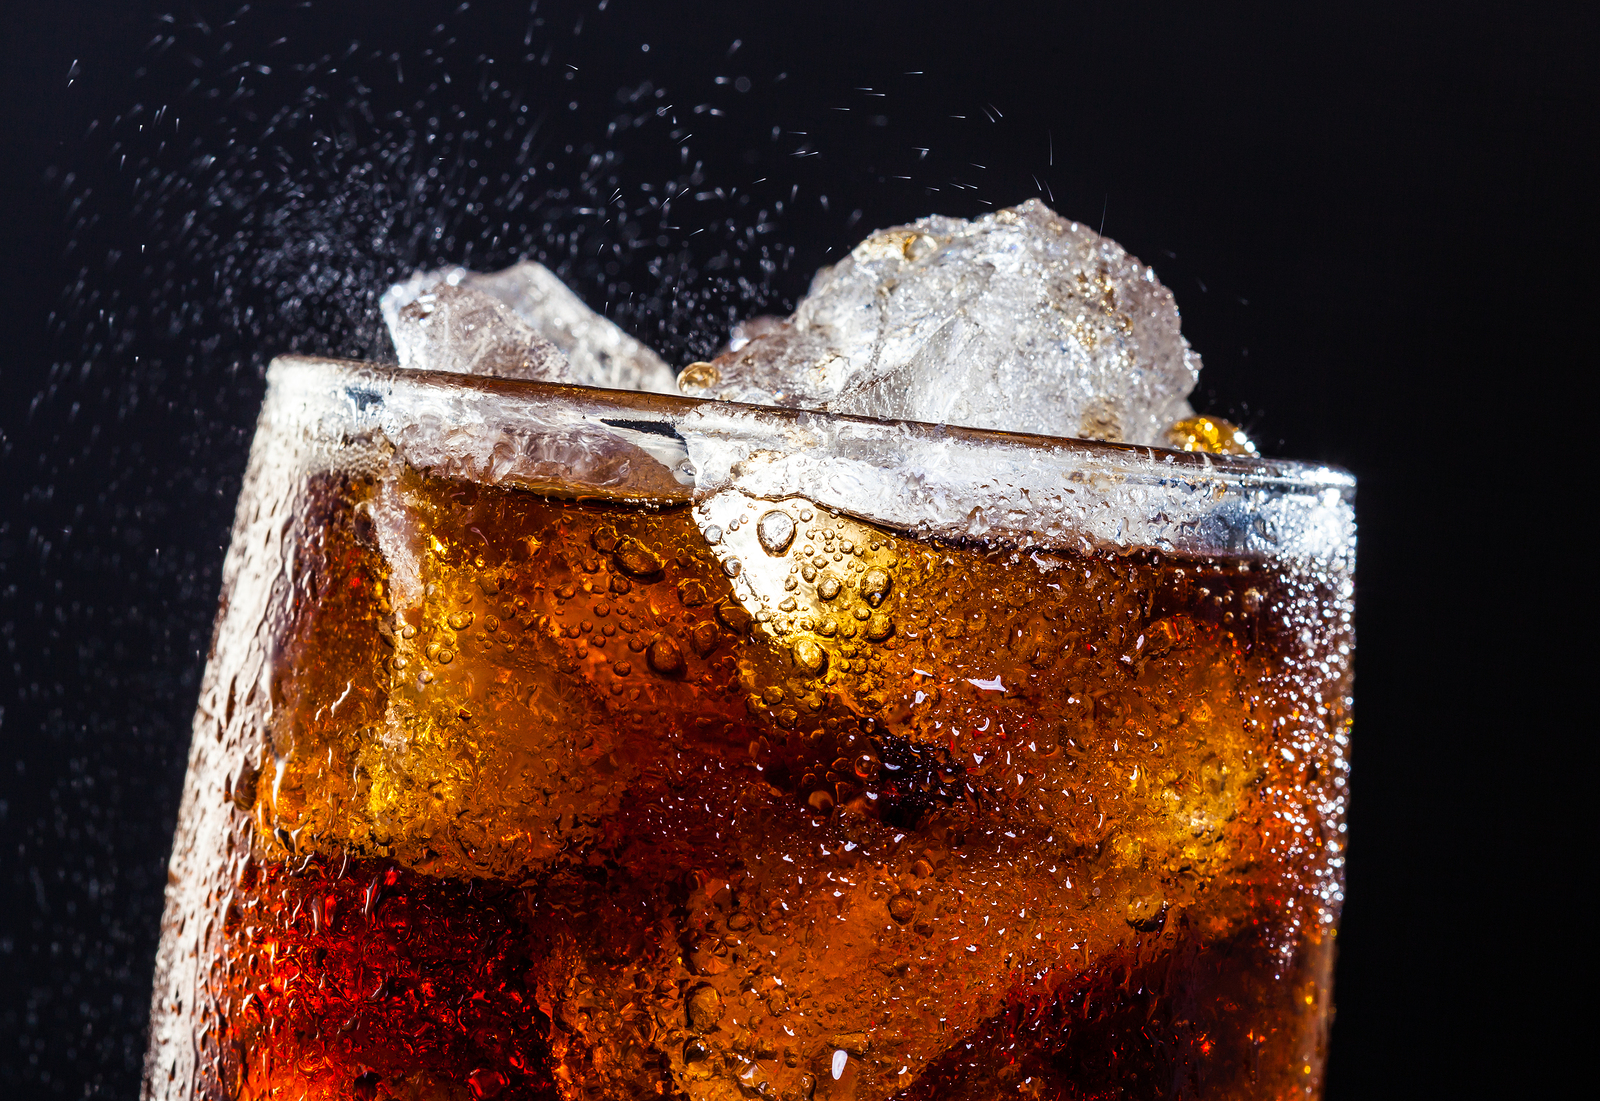 Carbonic >> Why Does Soda Taste Significantly Better When Carbonated vs. Flat?